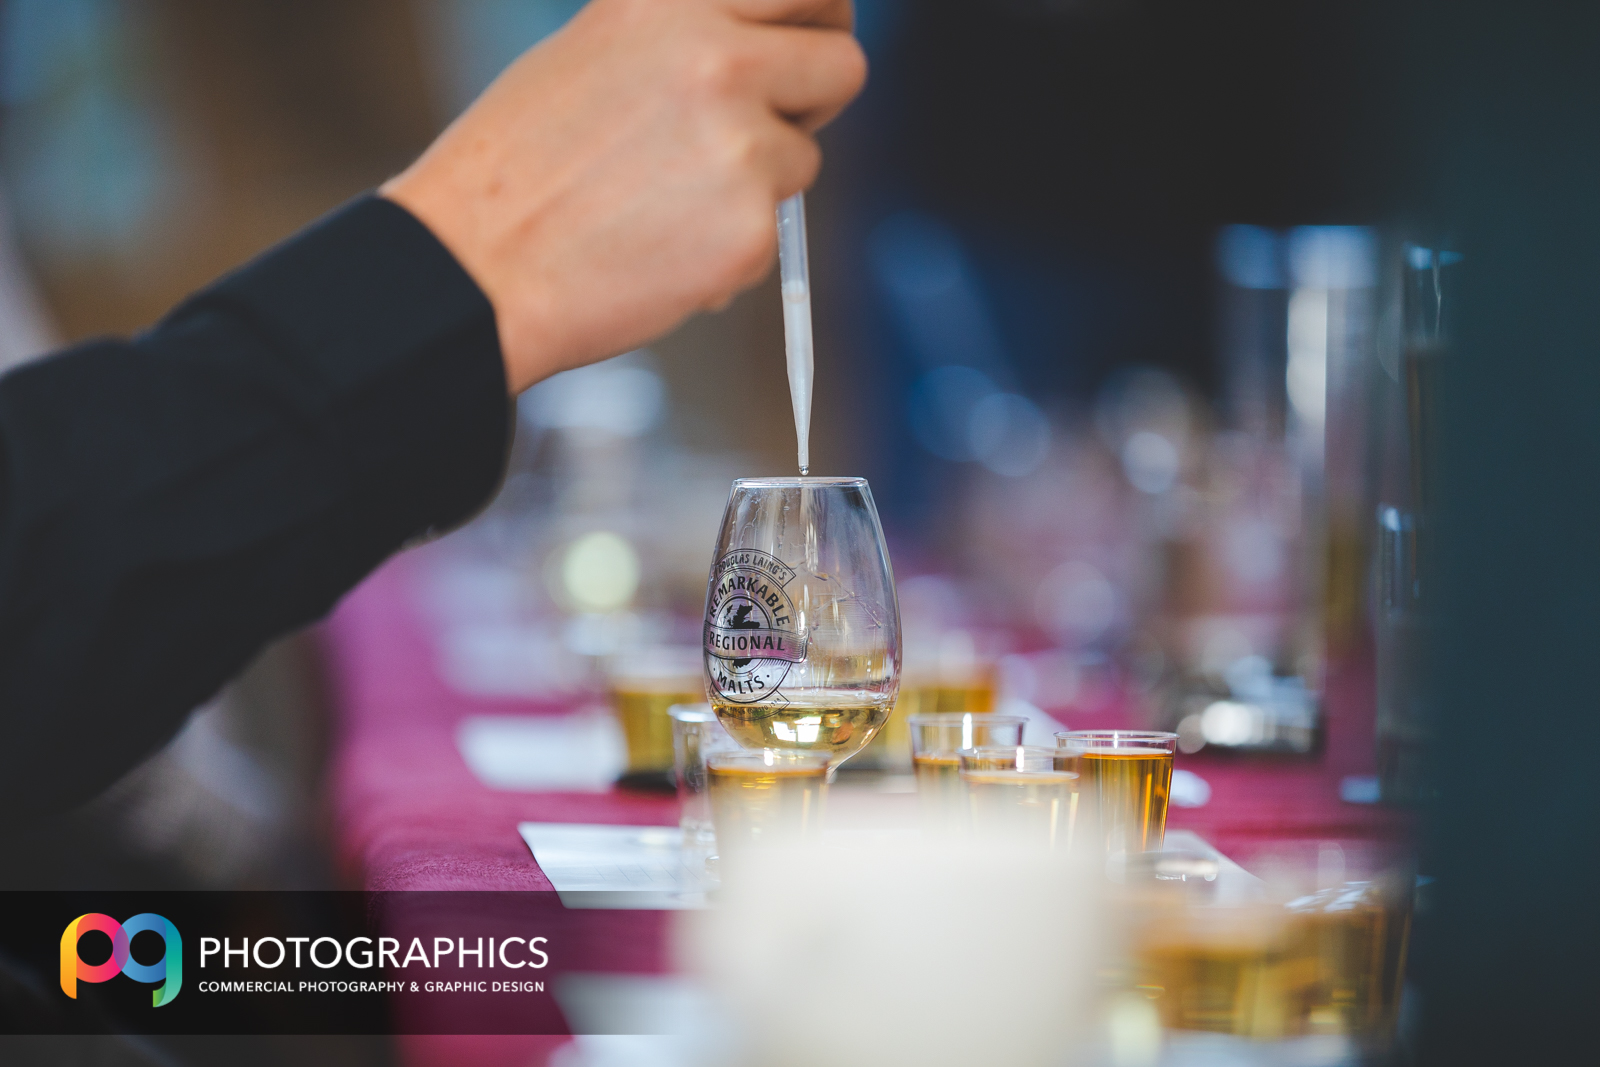 whisky-tasting-event-photography-glasgow-edinburgh-scotland-5.jpg